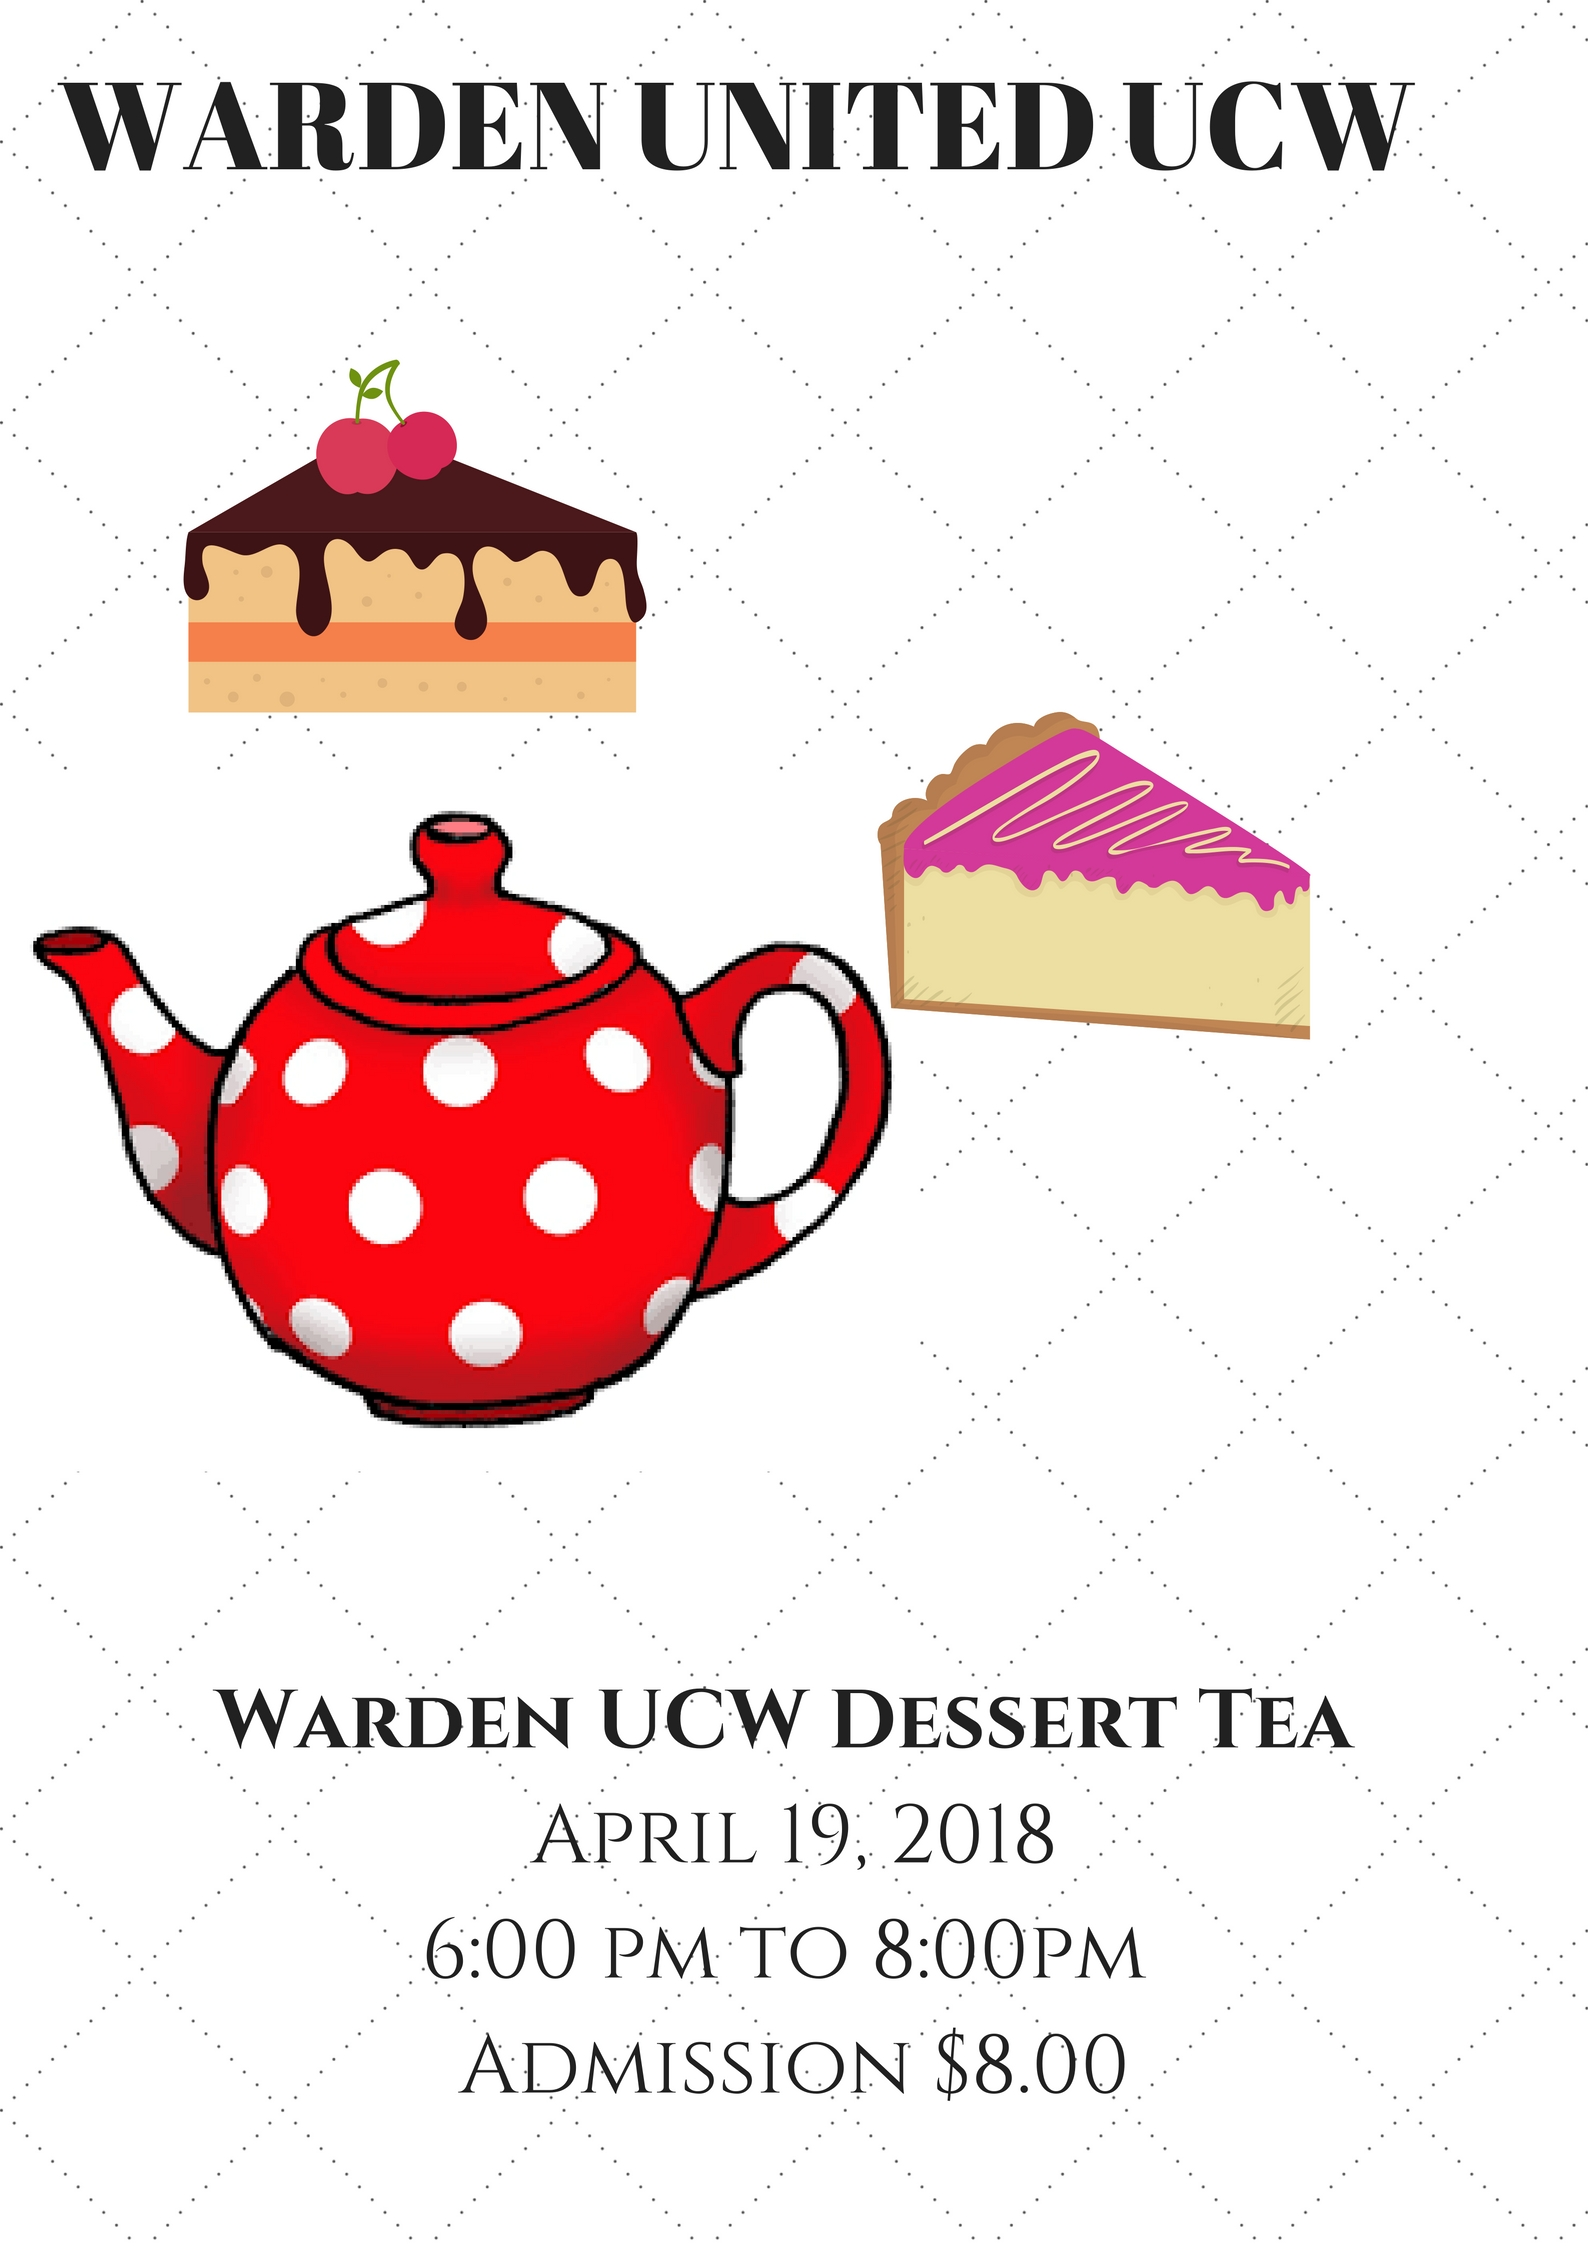 Warden UCW Dessert Tea April 19 20186 00 pm to 8 00pm Admission 8.00